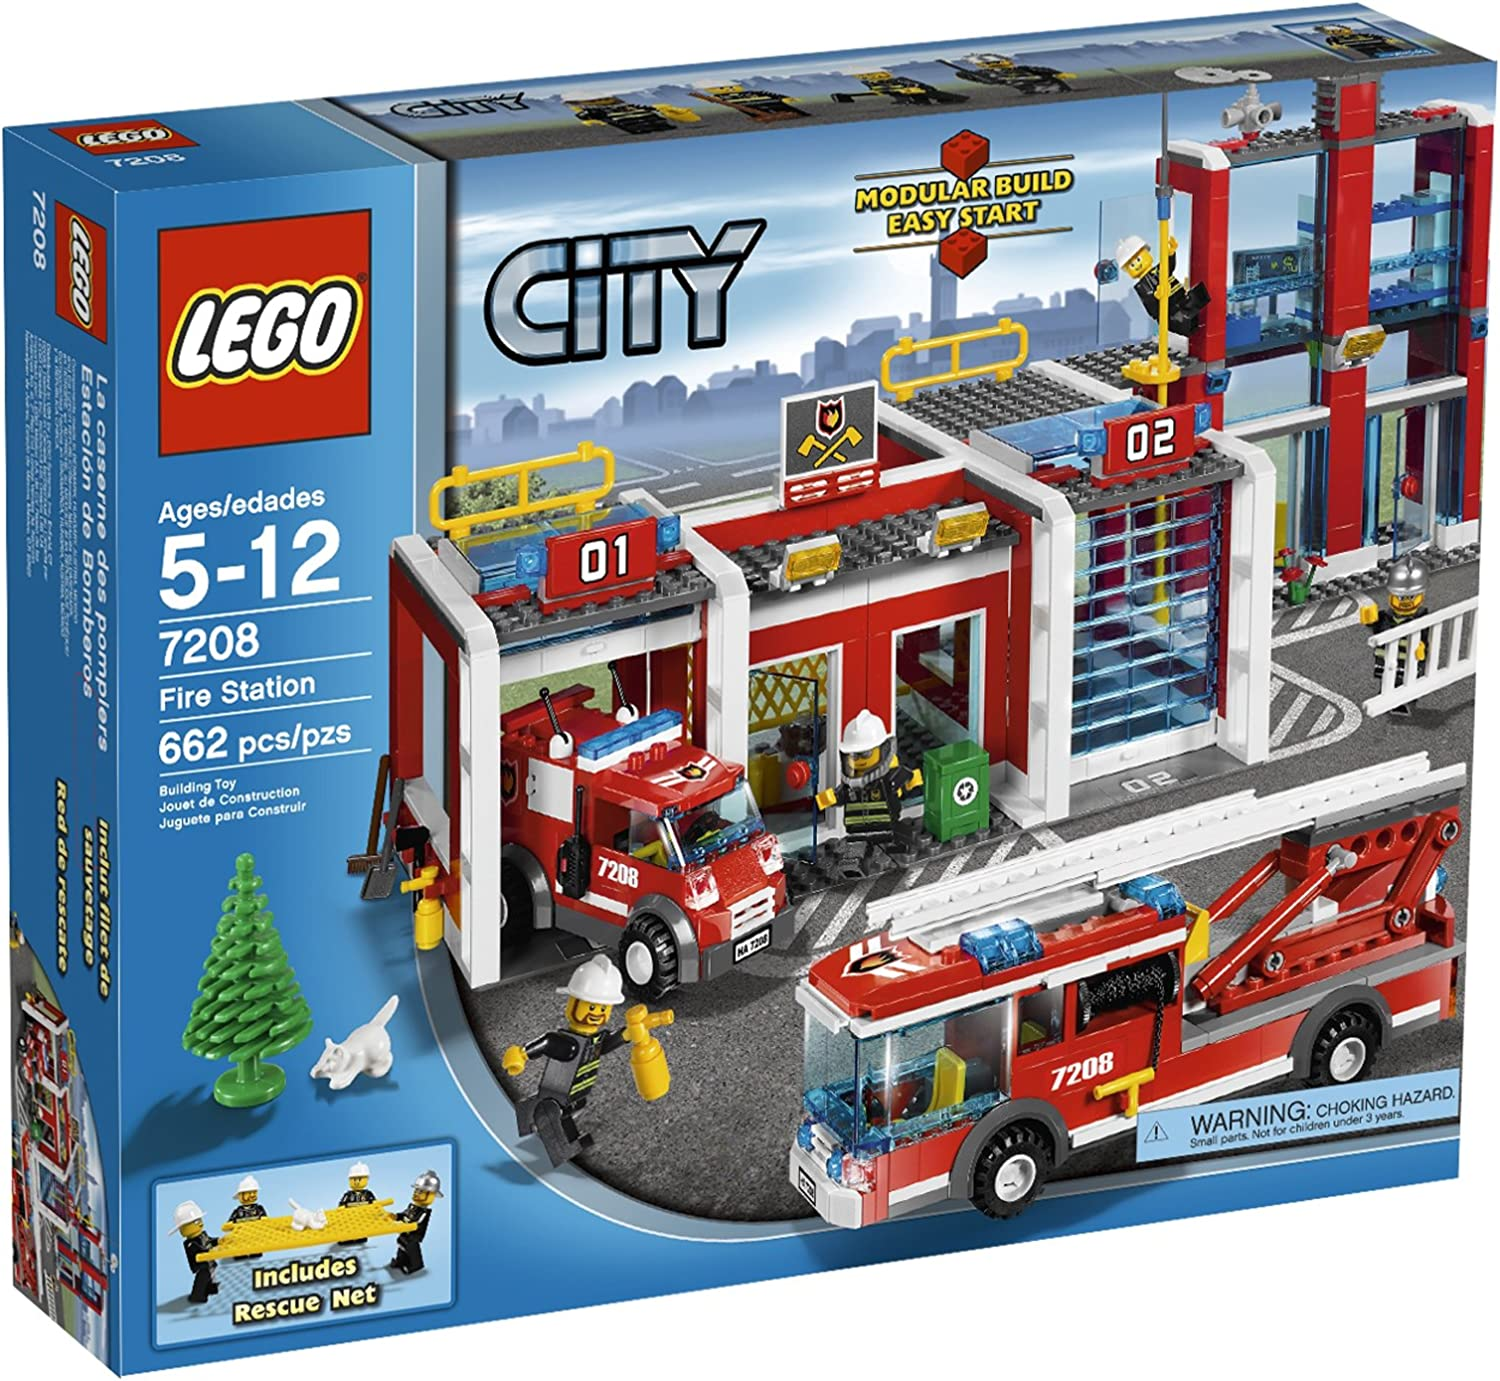 Best Lego City Fire Station 60215 Building Set With ...